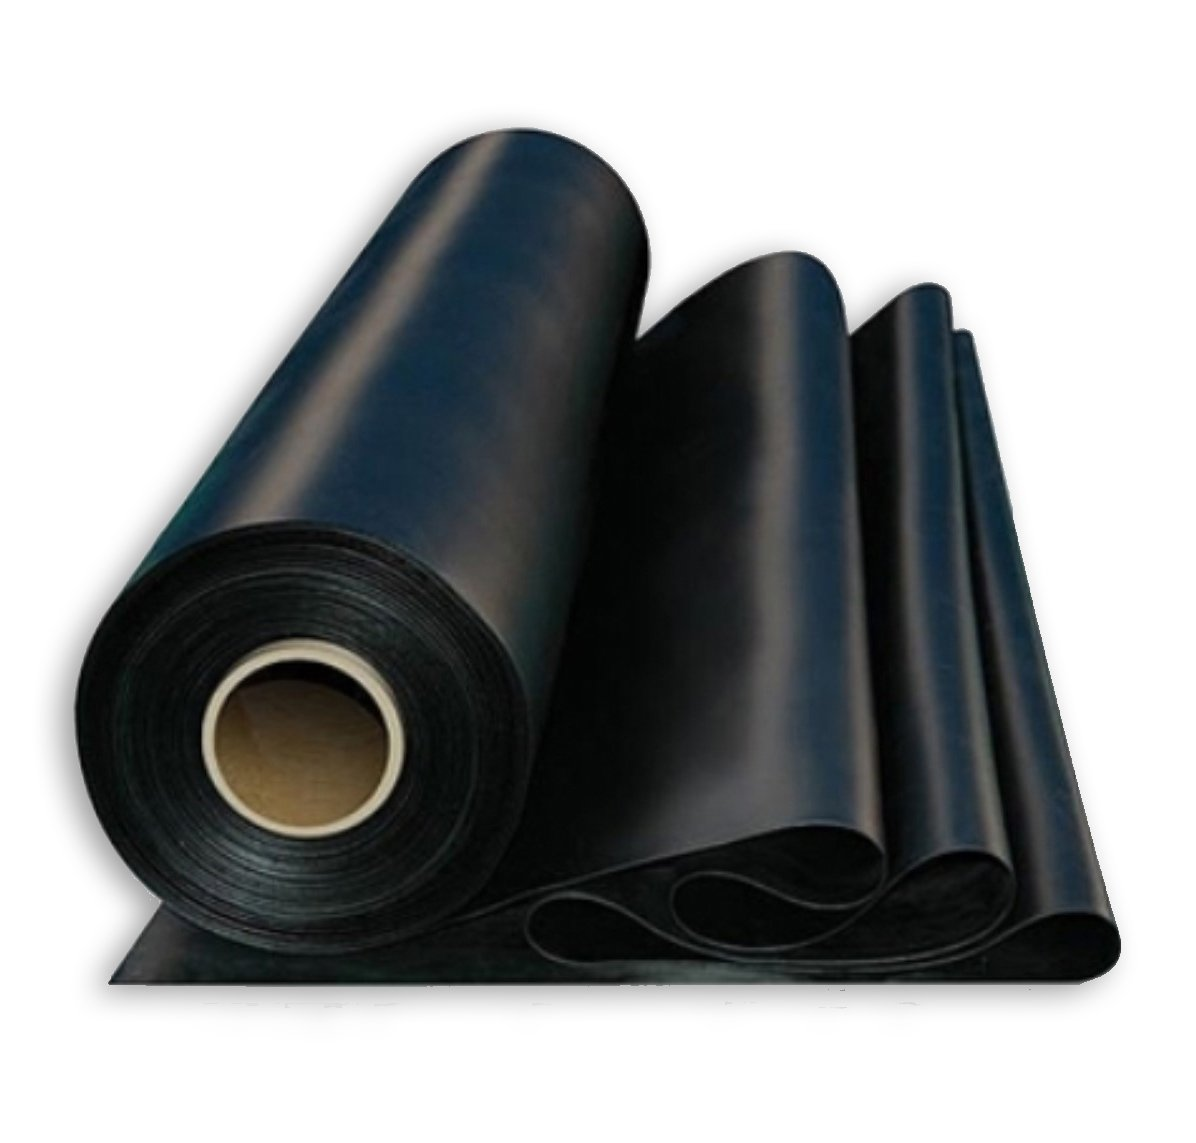 5' X 5' Firestone Rubbergard 60 Mil Epdm Roofing Rubber by RubberGard